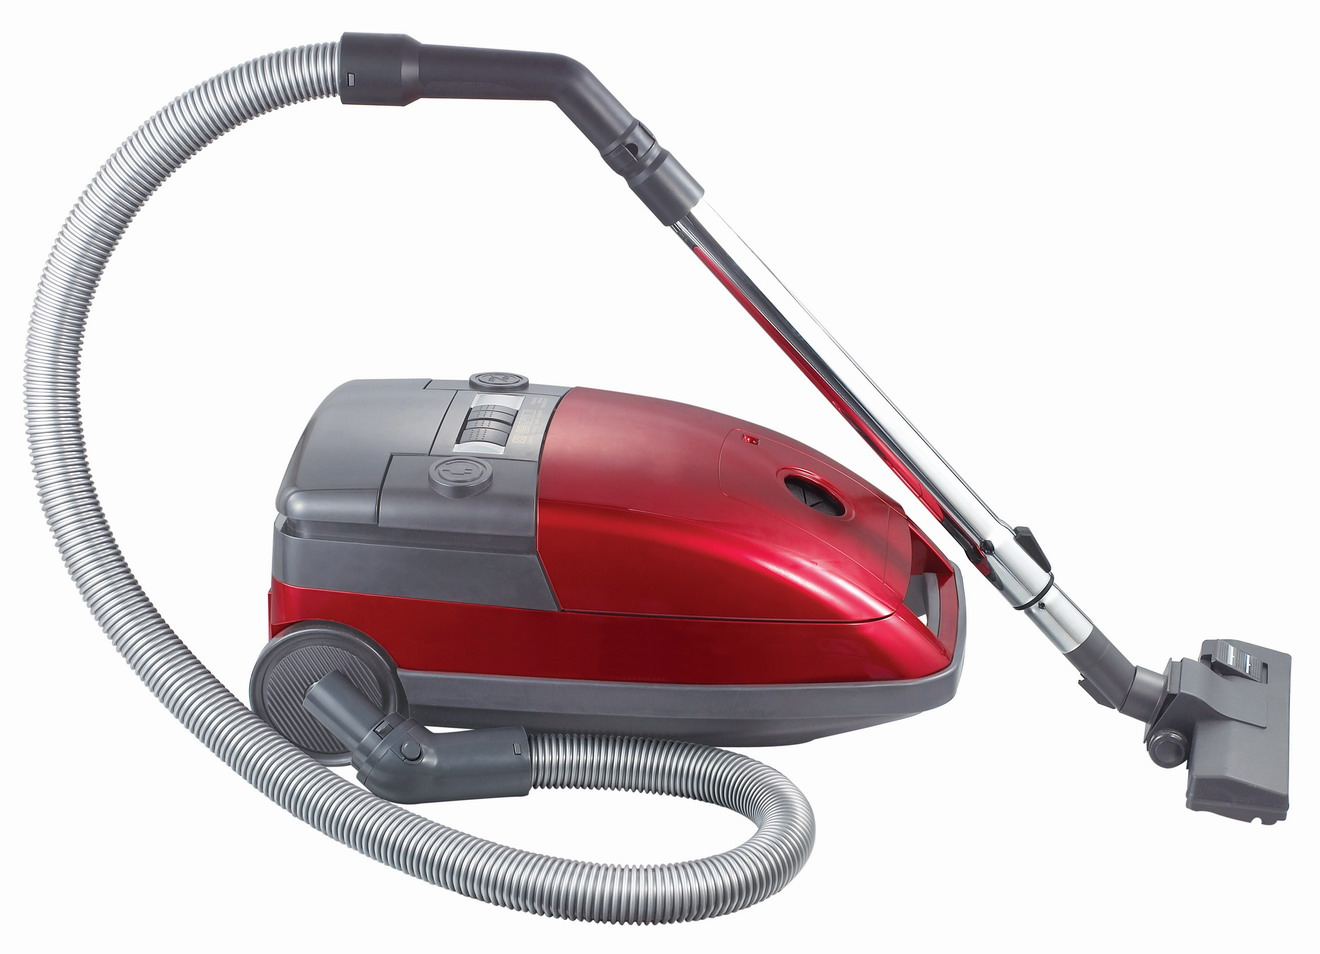 Vacuum Cleaner Repair (Image 9 of 10)